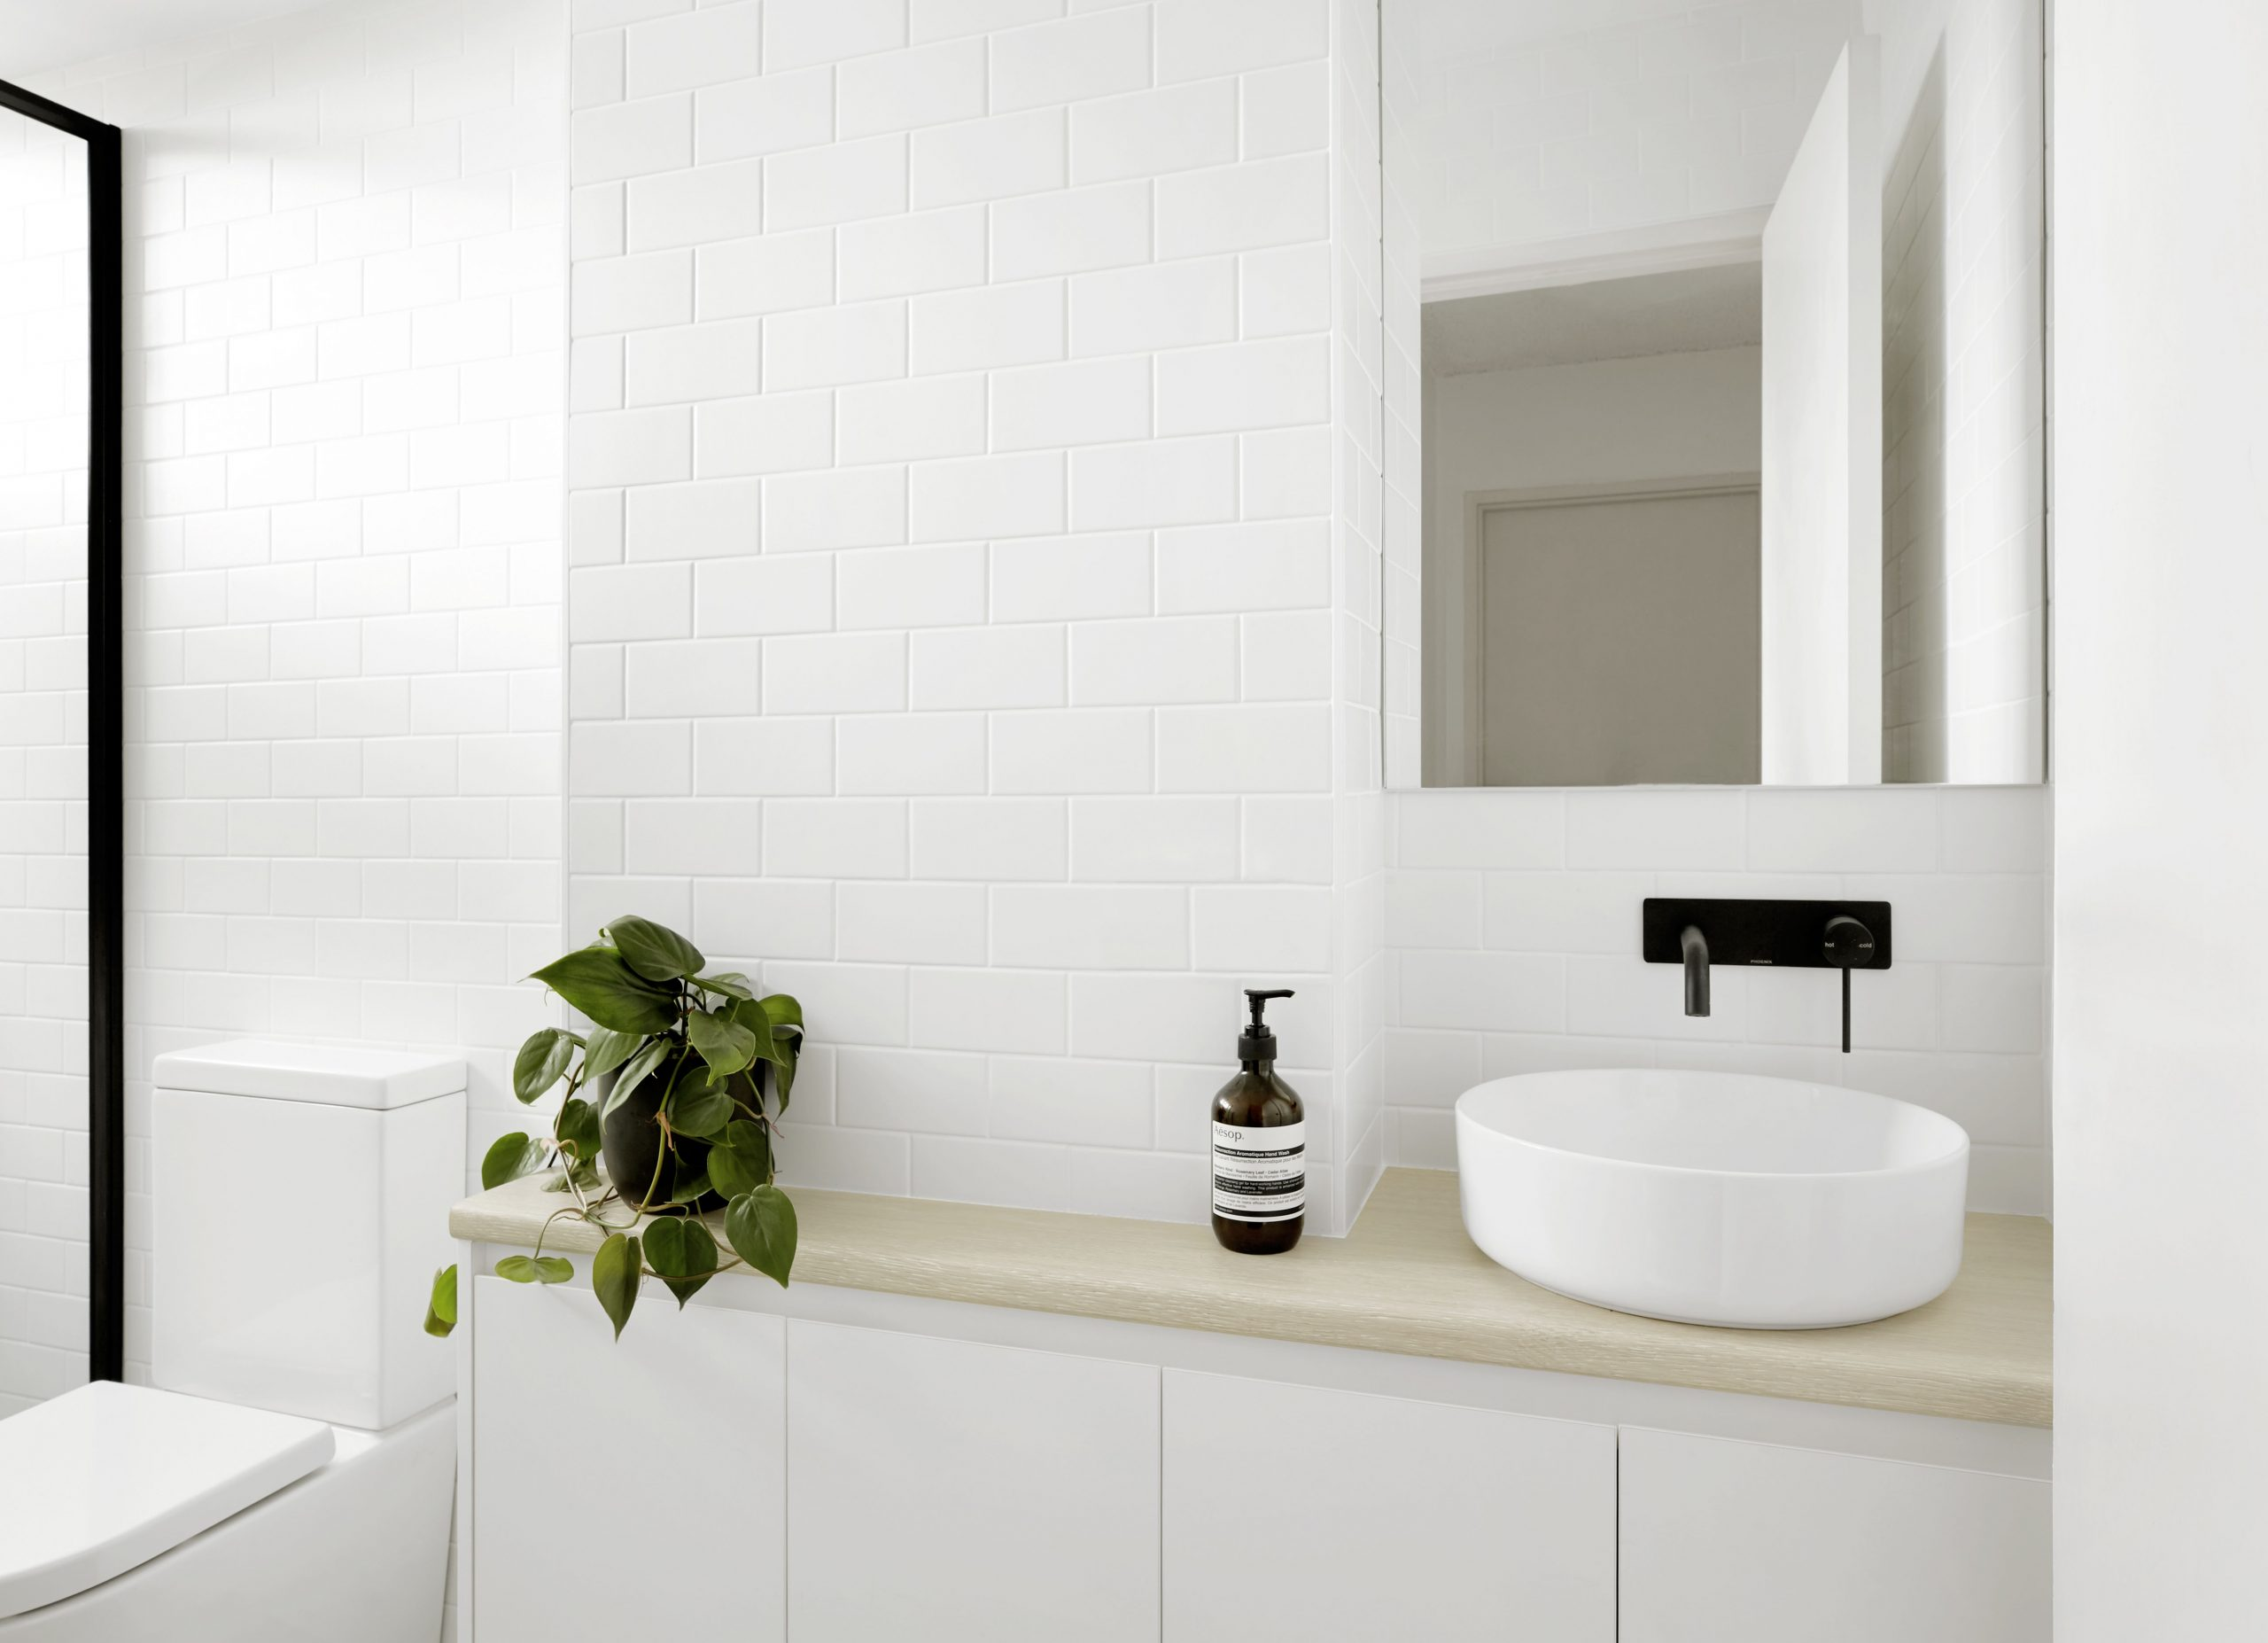 After - Fresh and contemporarty bathroom makeover